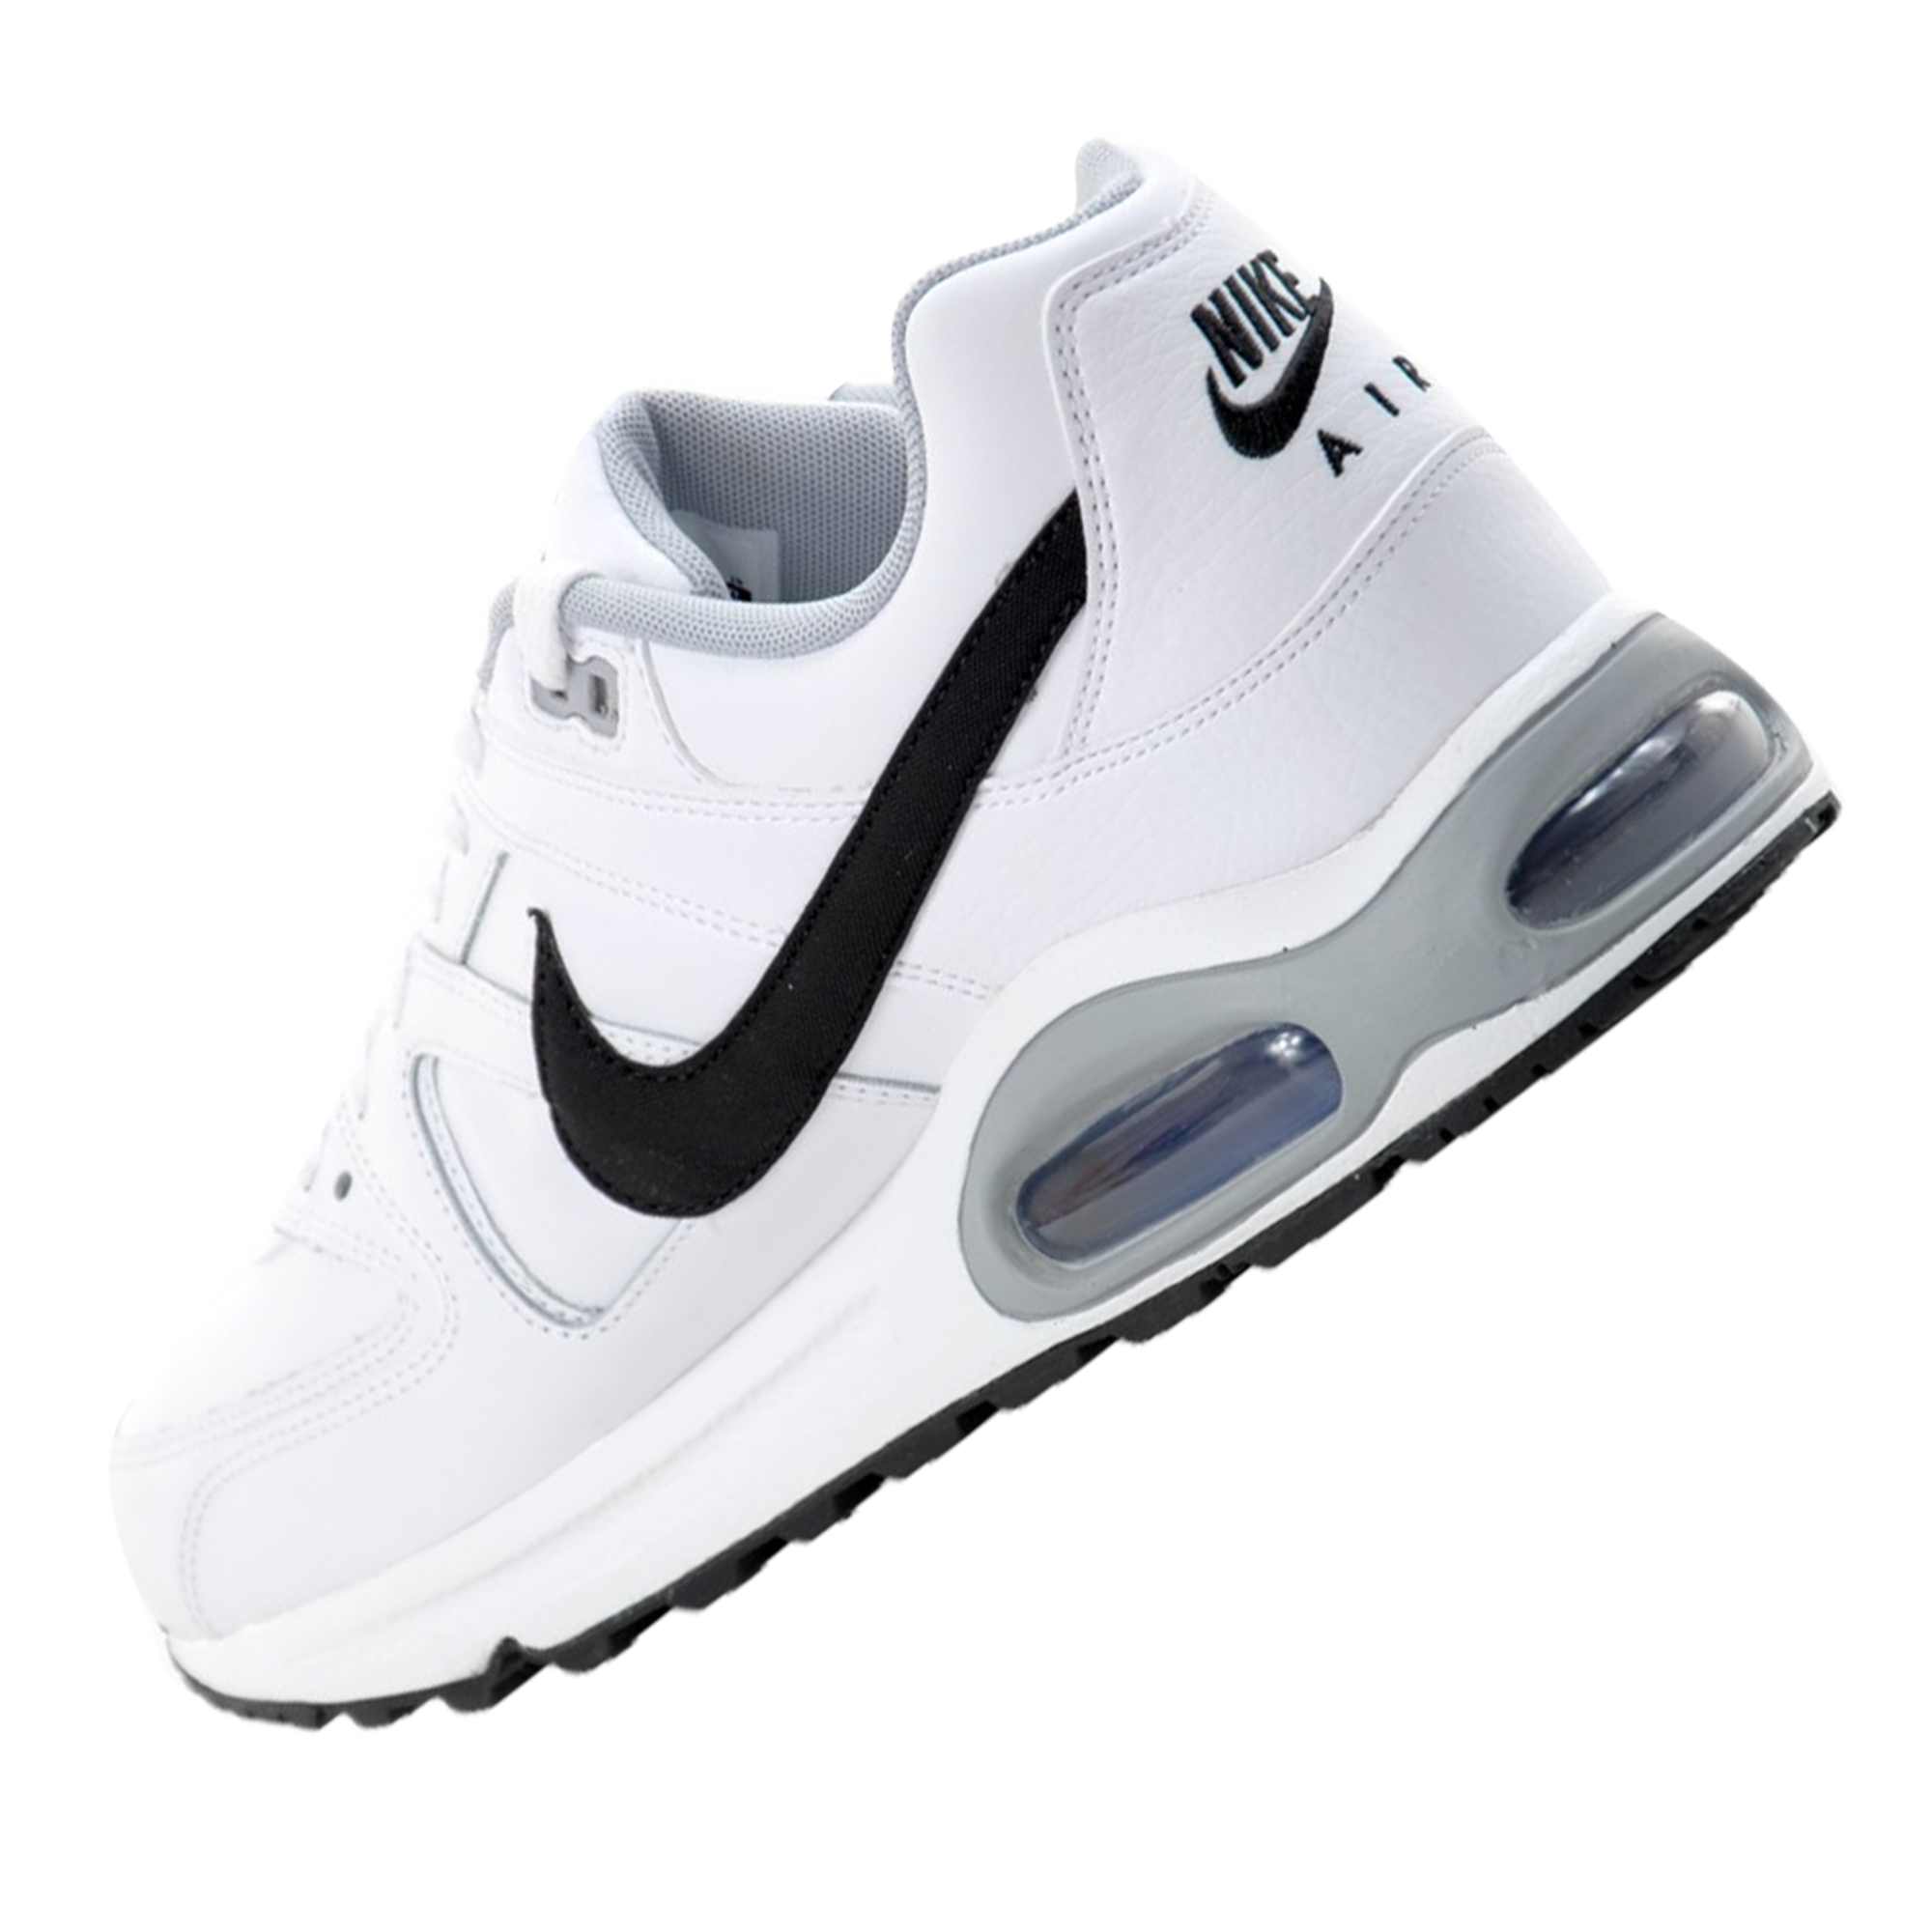 reputable site fb944 9aa7d nike air max command leather kaufen .